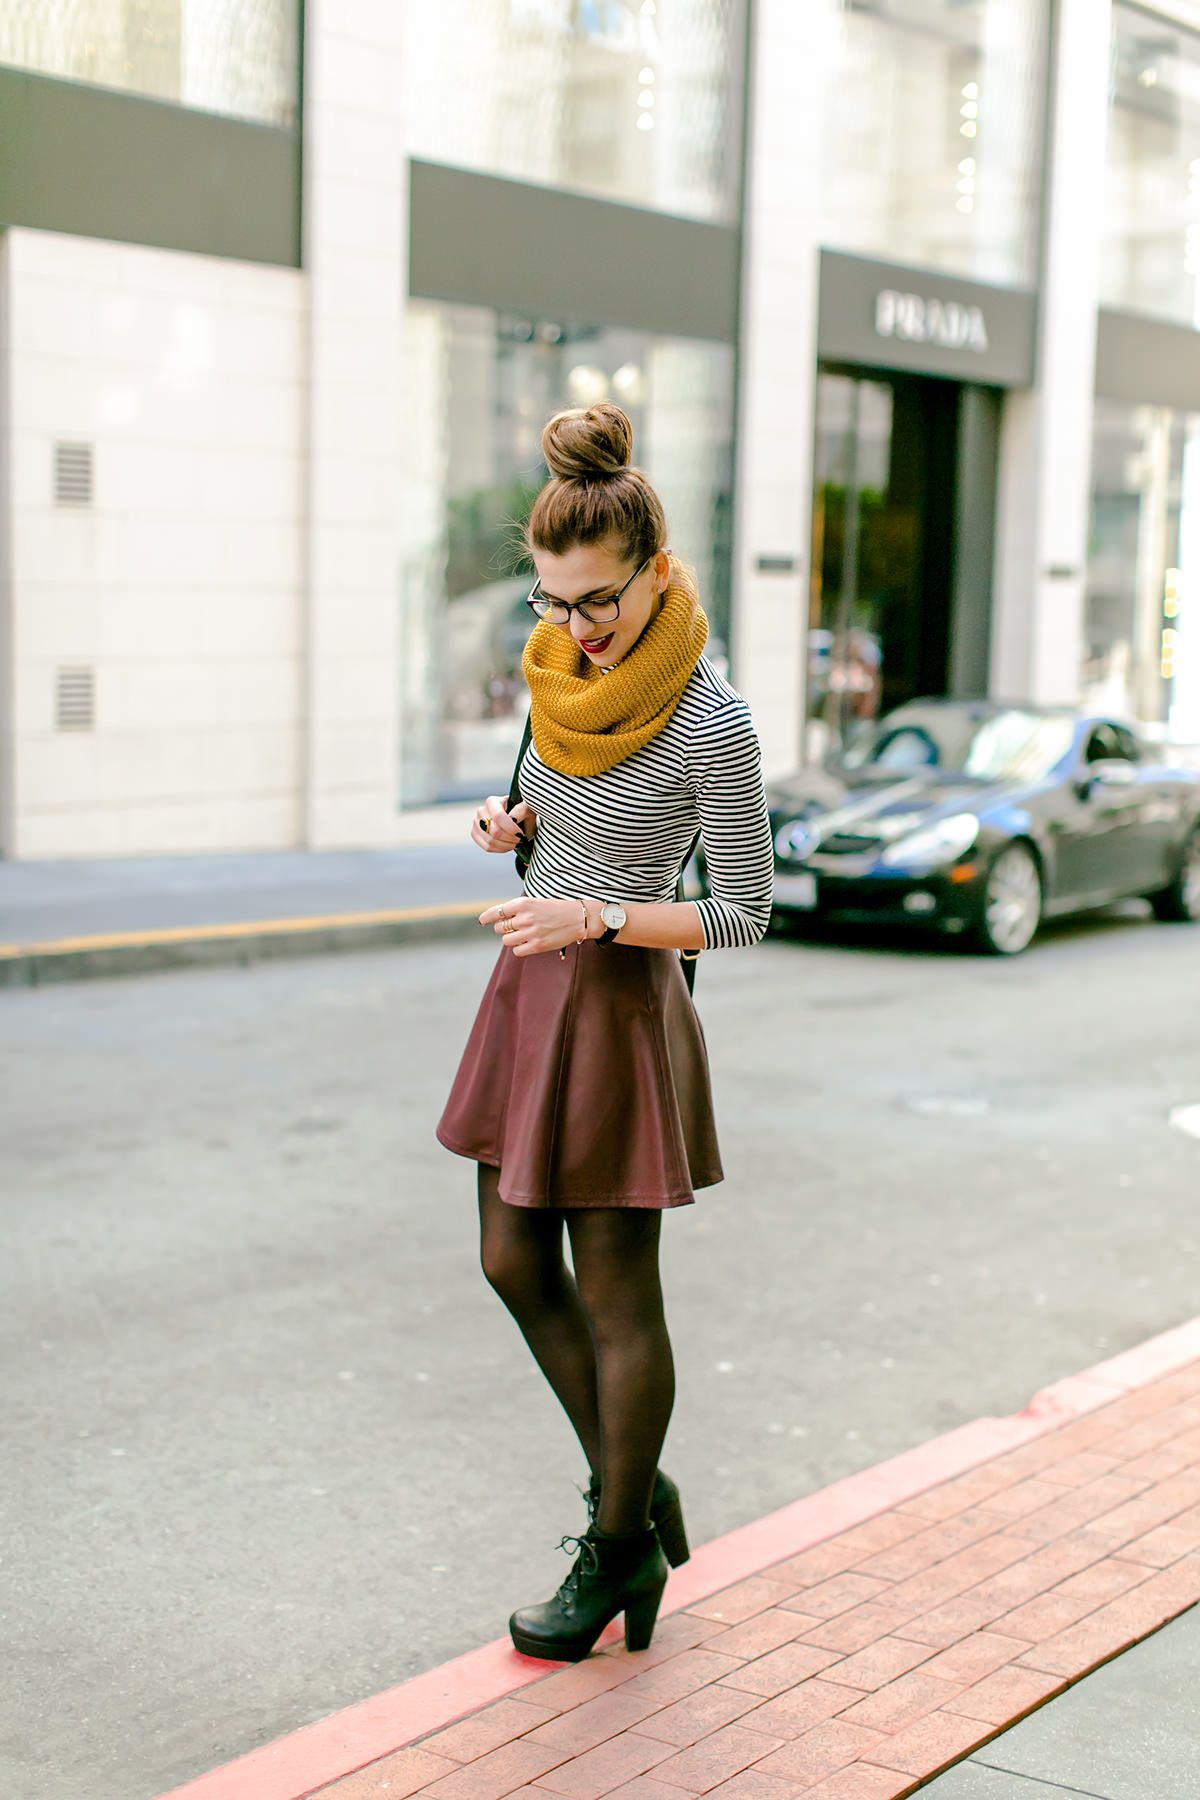 How to yellow wear skirt in winter images